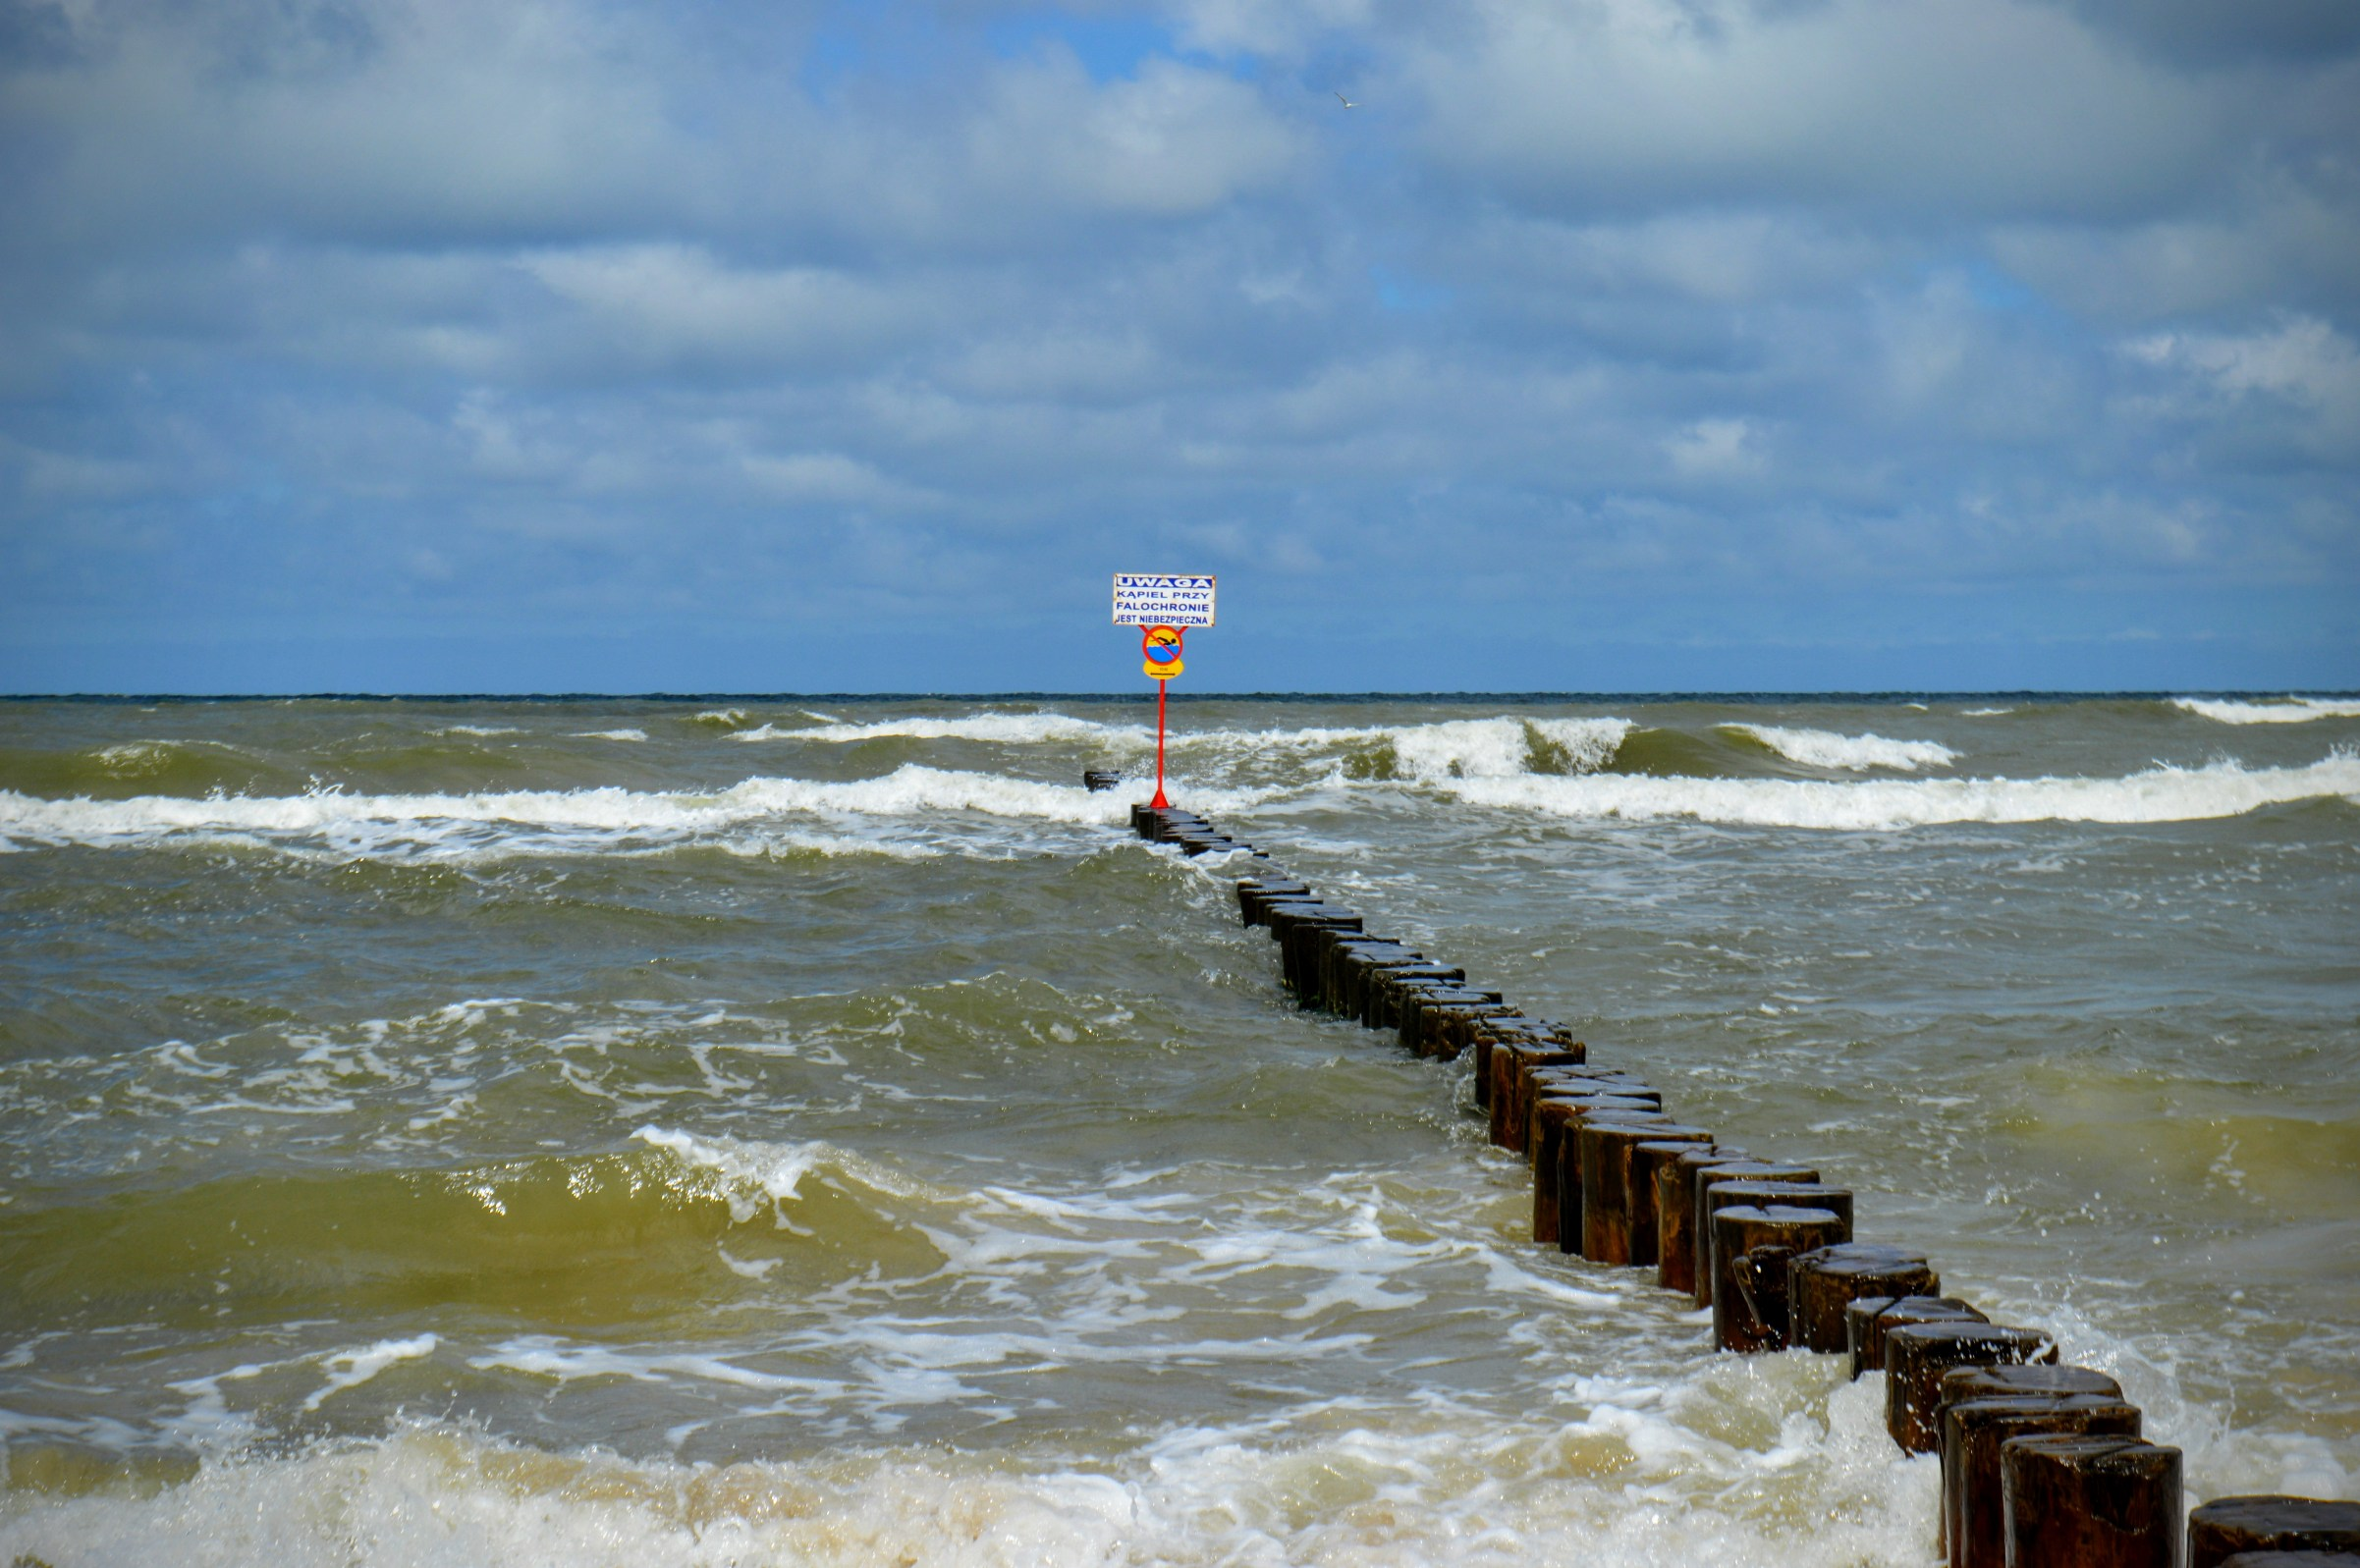 Breakwaters with a wooden deck in a stormy sea photo